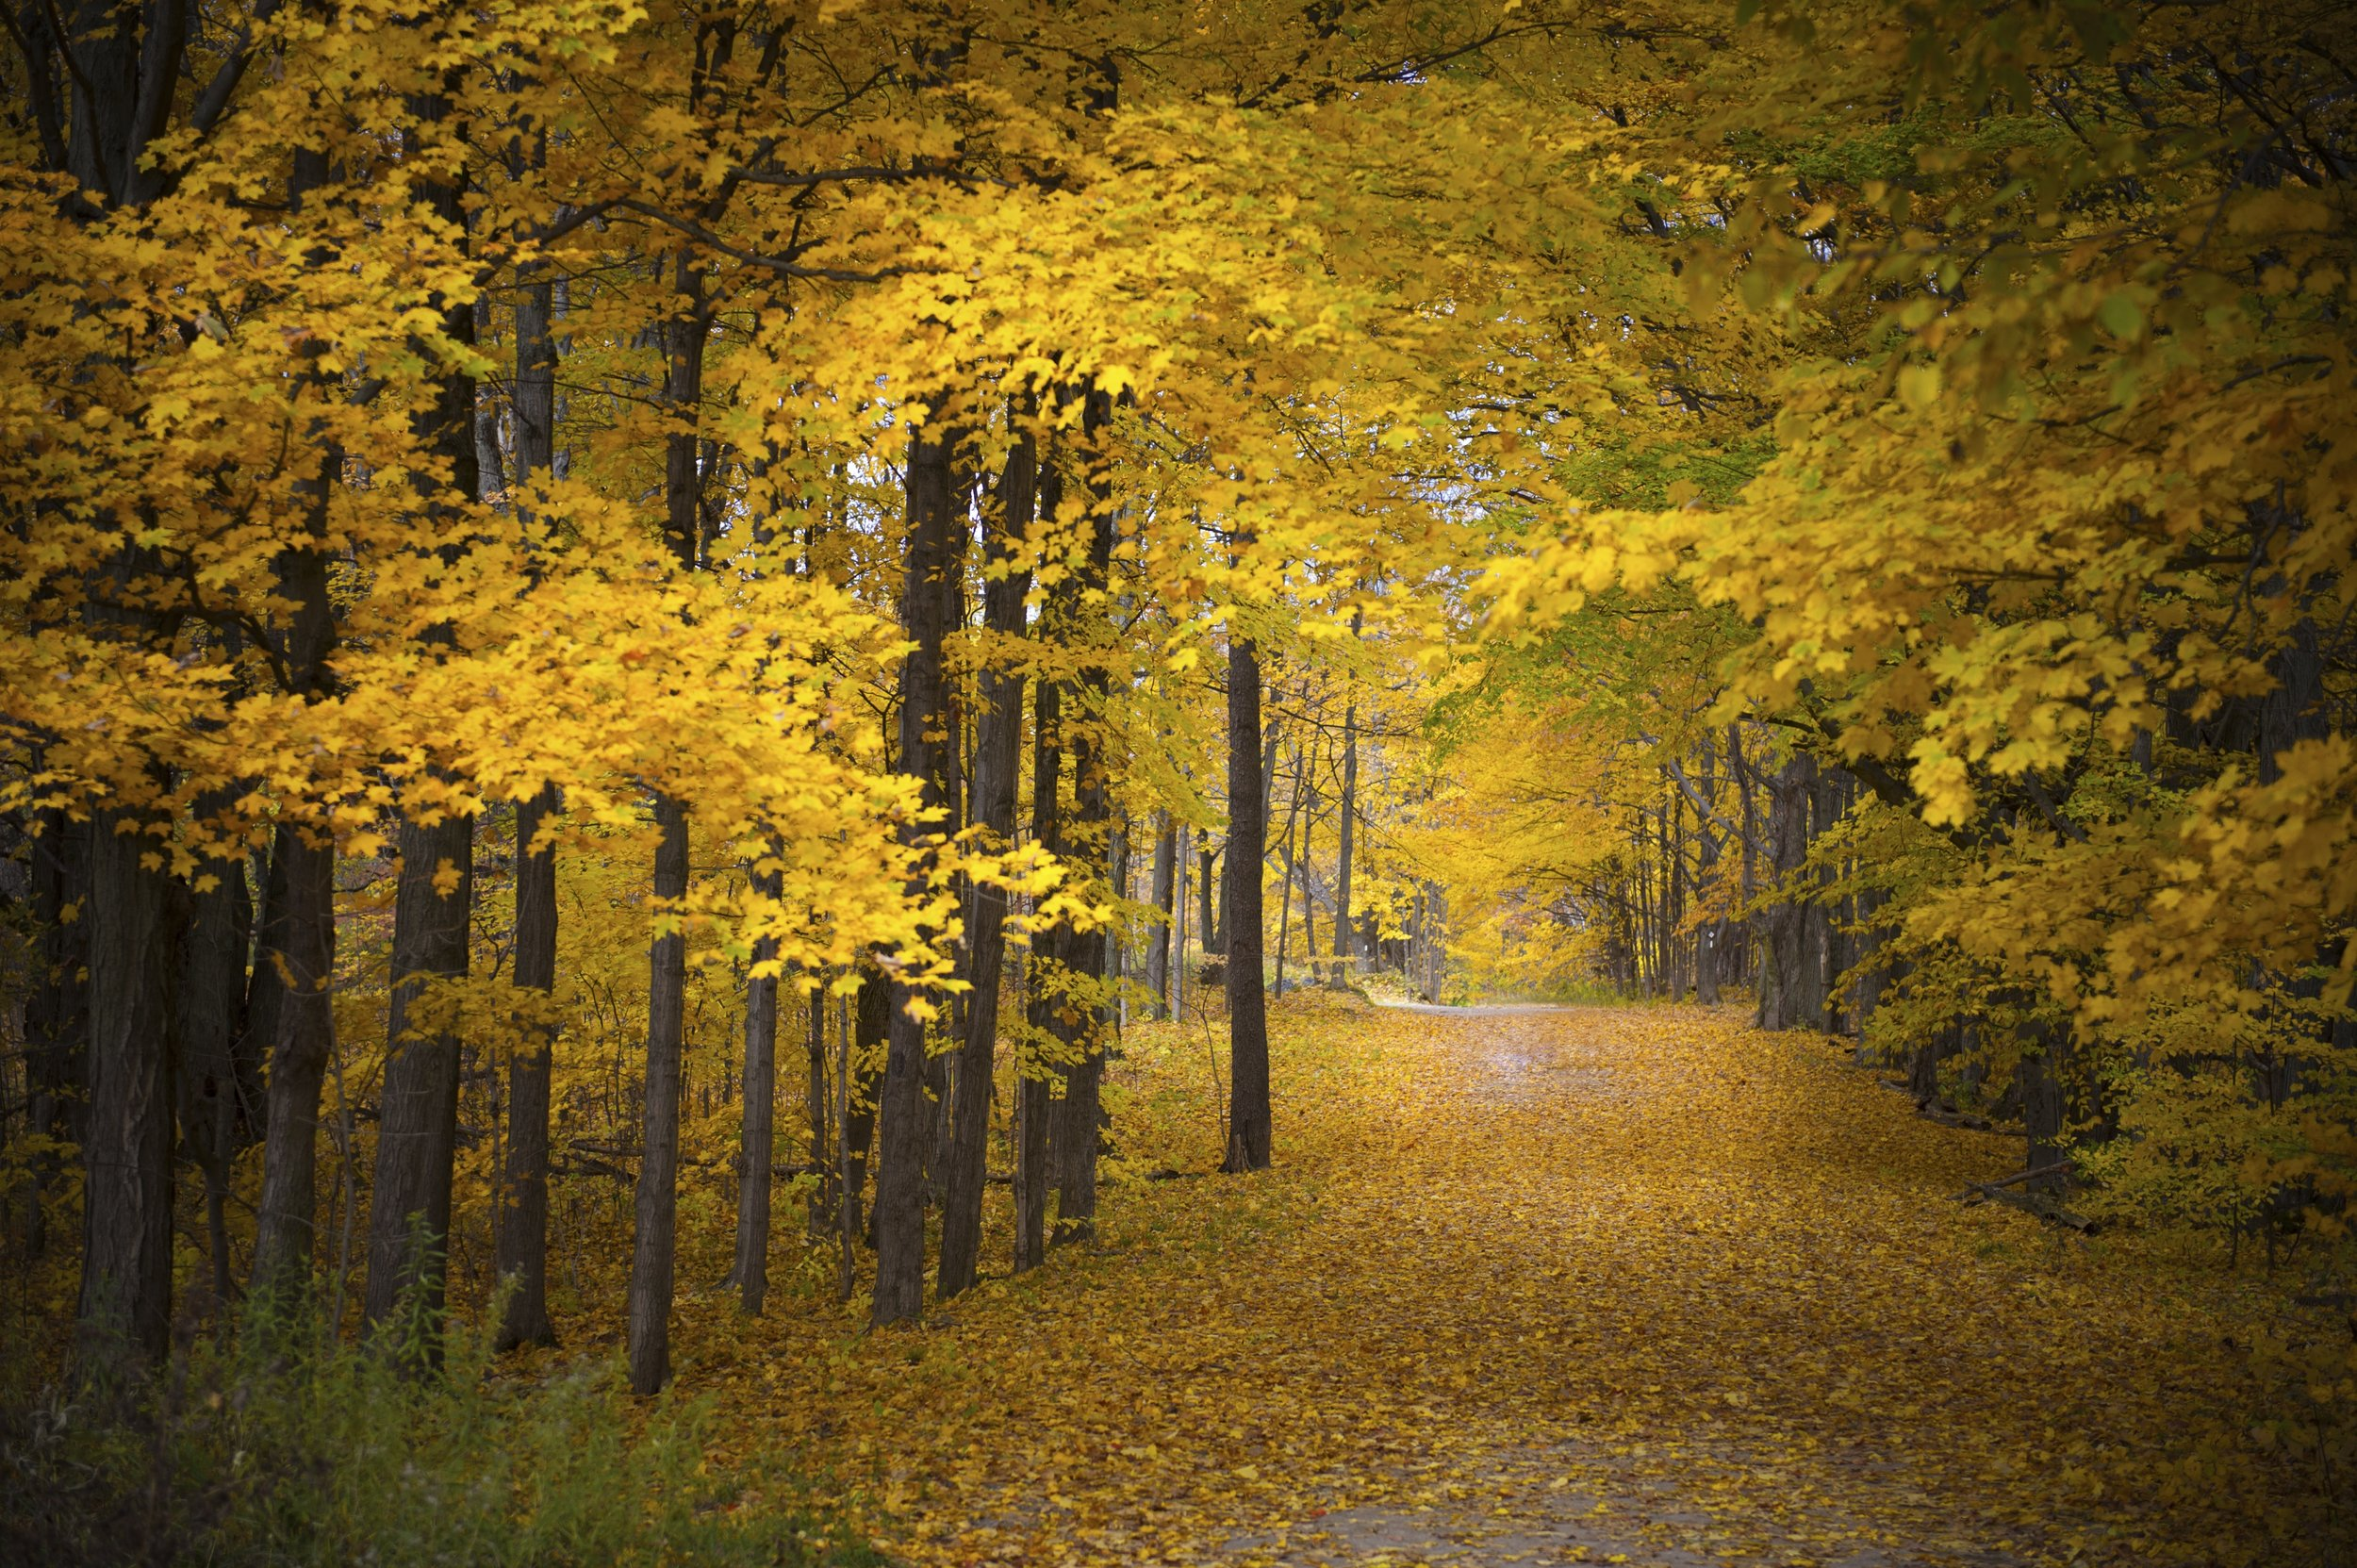 autumn road with yellow leaves covering road.jpg